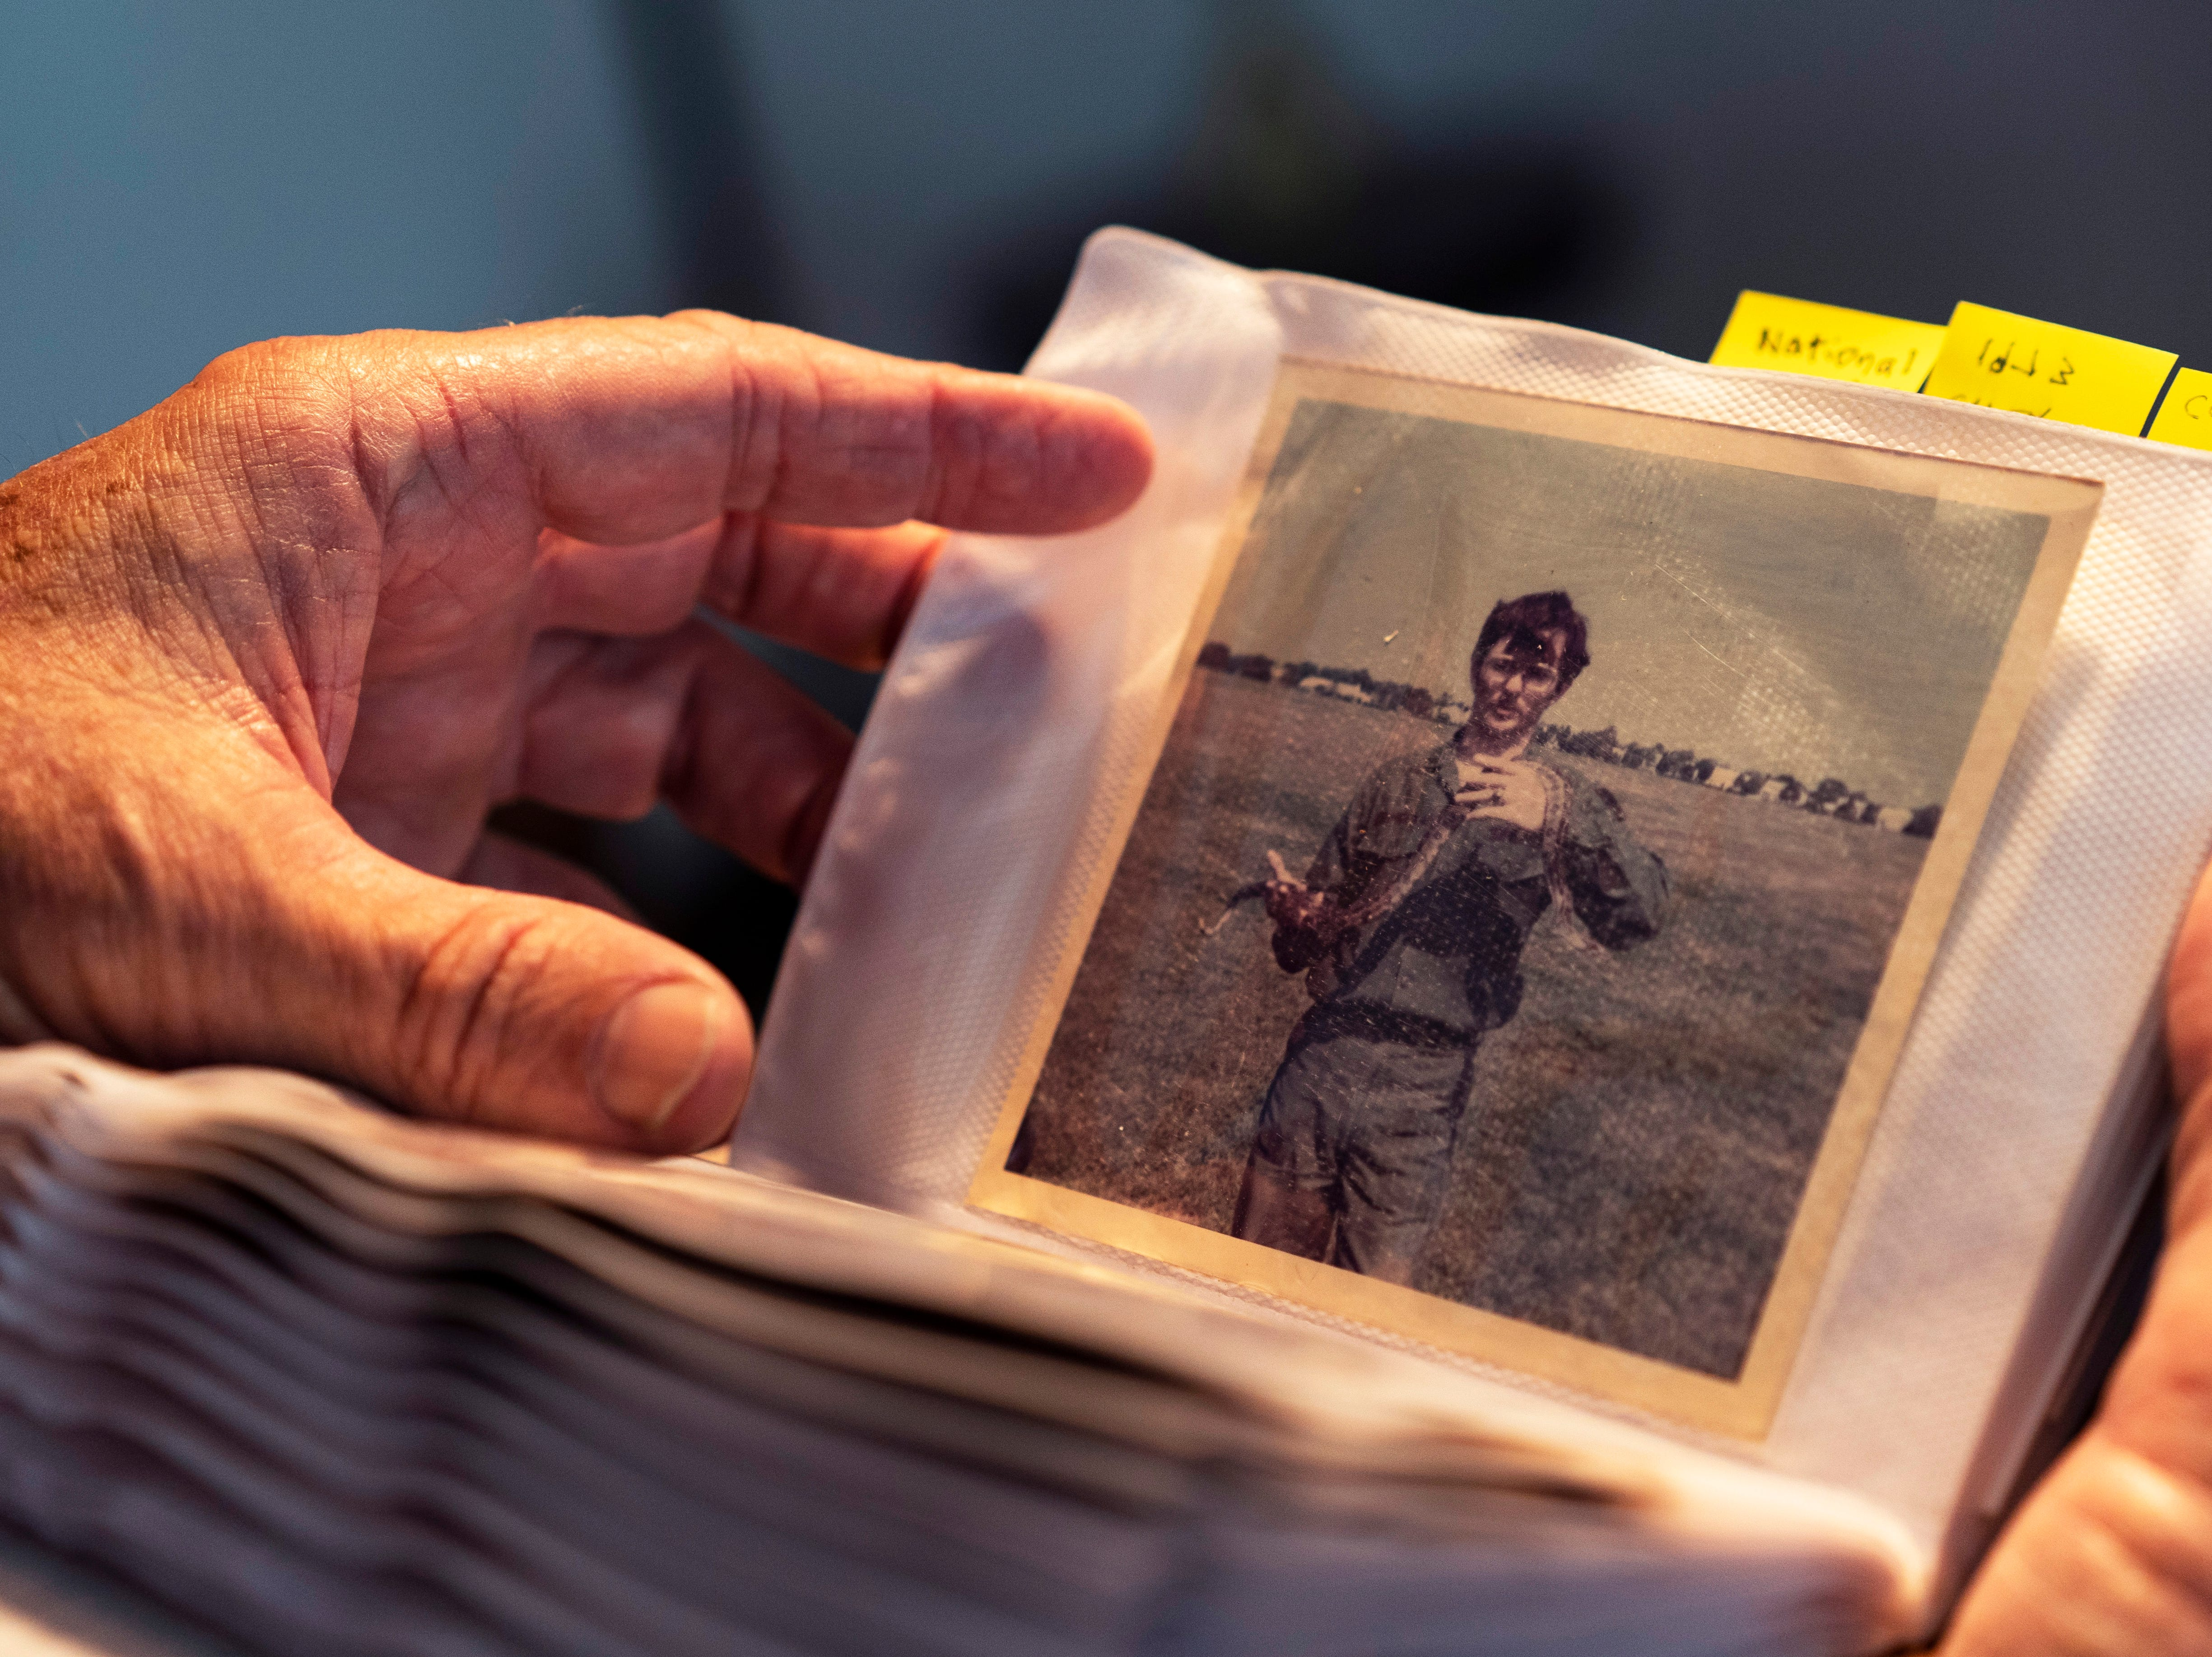 While arranging photographs, Dave Cornelisse takes a moment to look at a photo of him holding a snake while on National Guard duty. During the Vietnam War, Cornelisse spent six years in the National Guard, mostly as a driver.